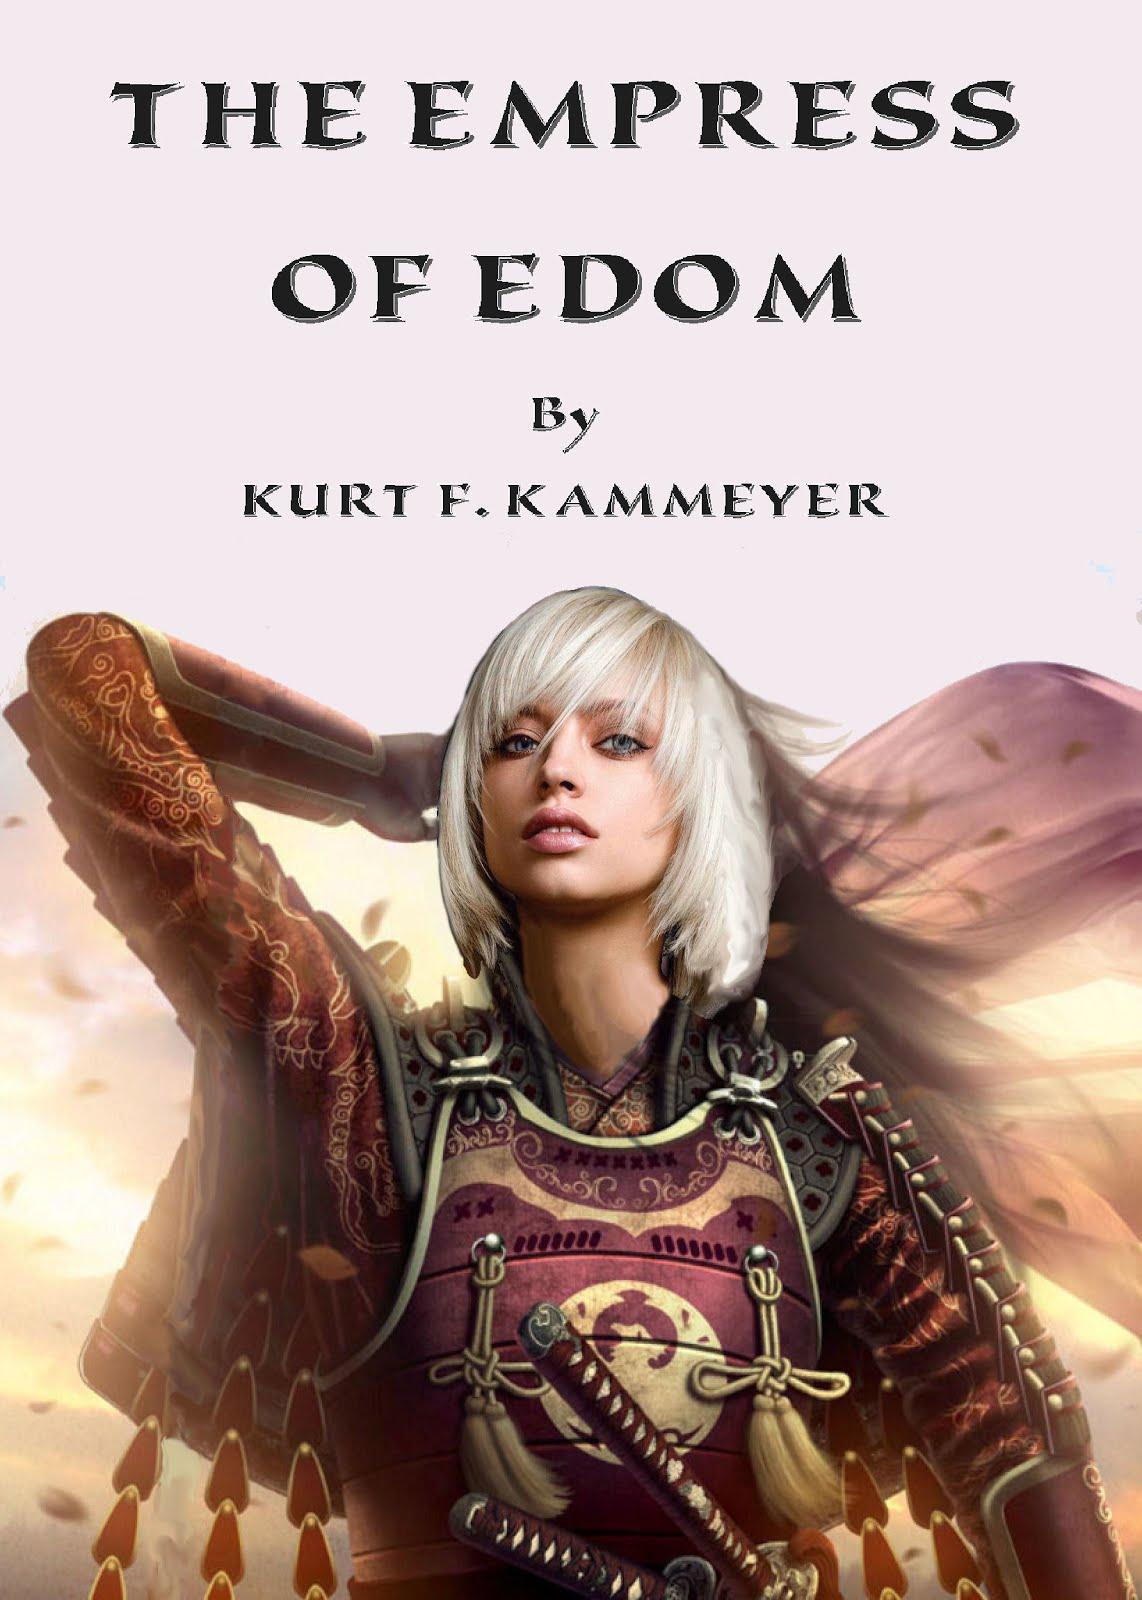 The Empress of Edom